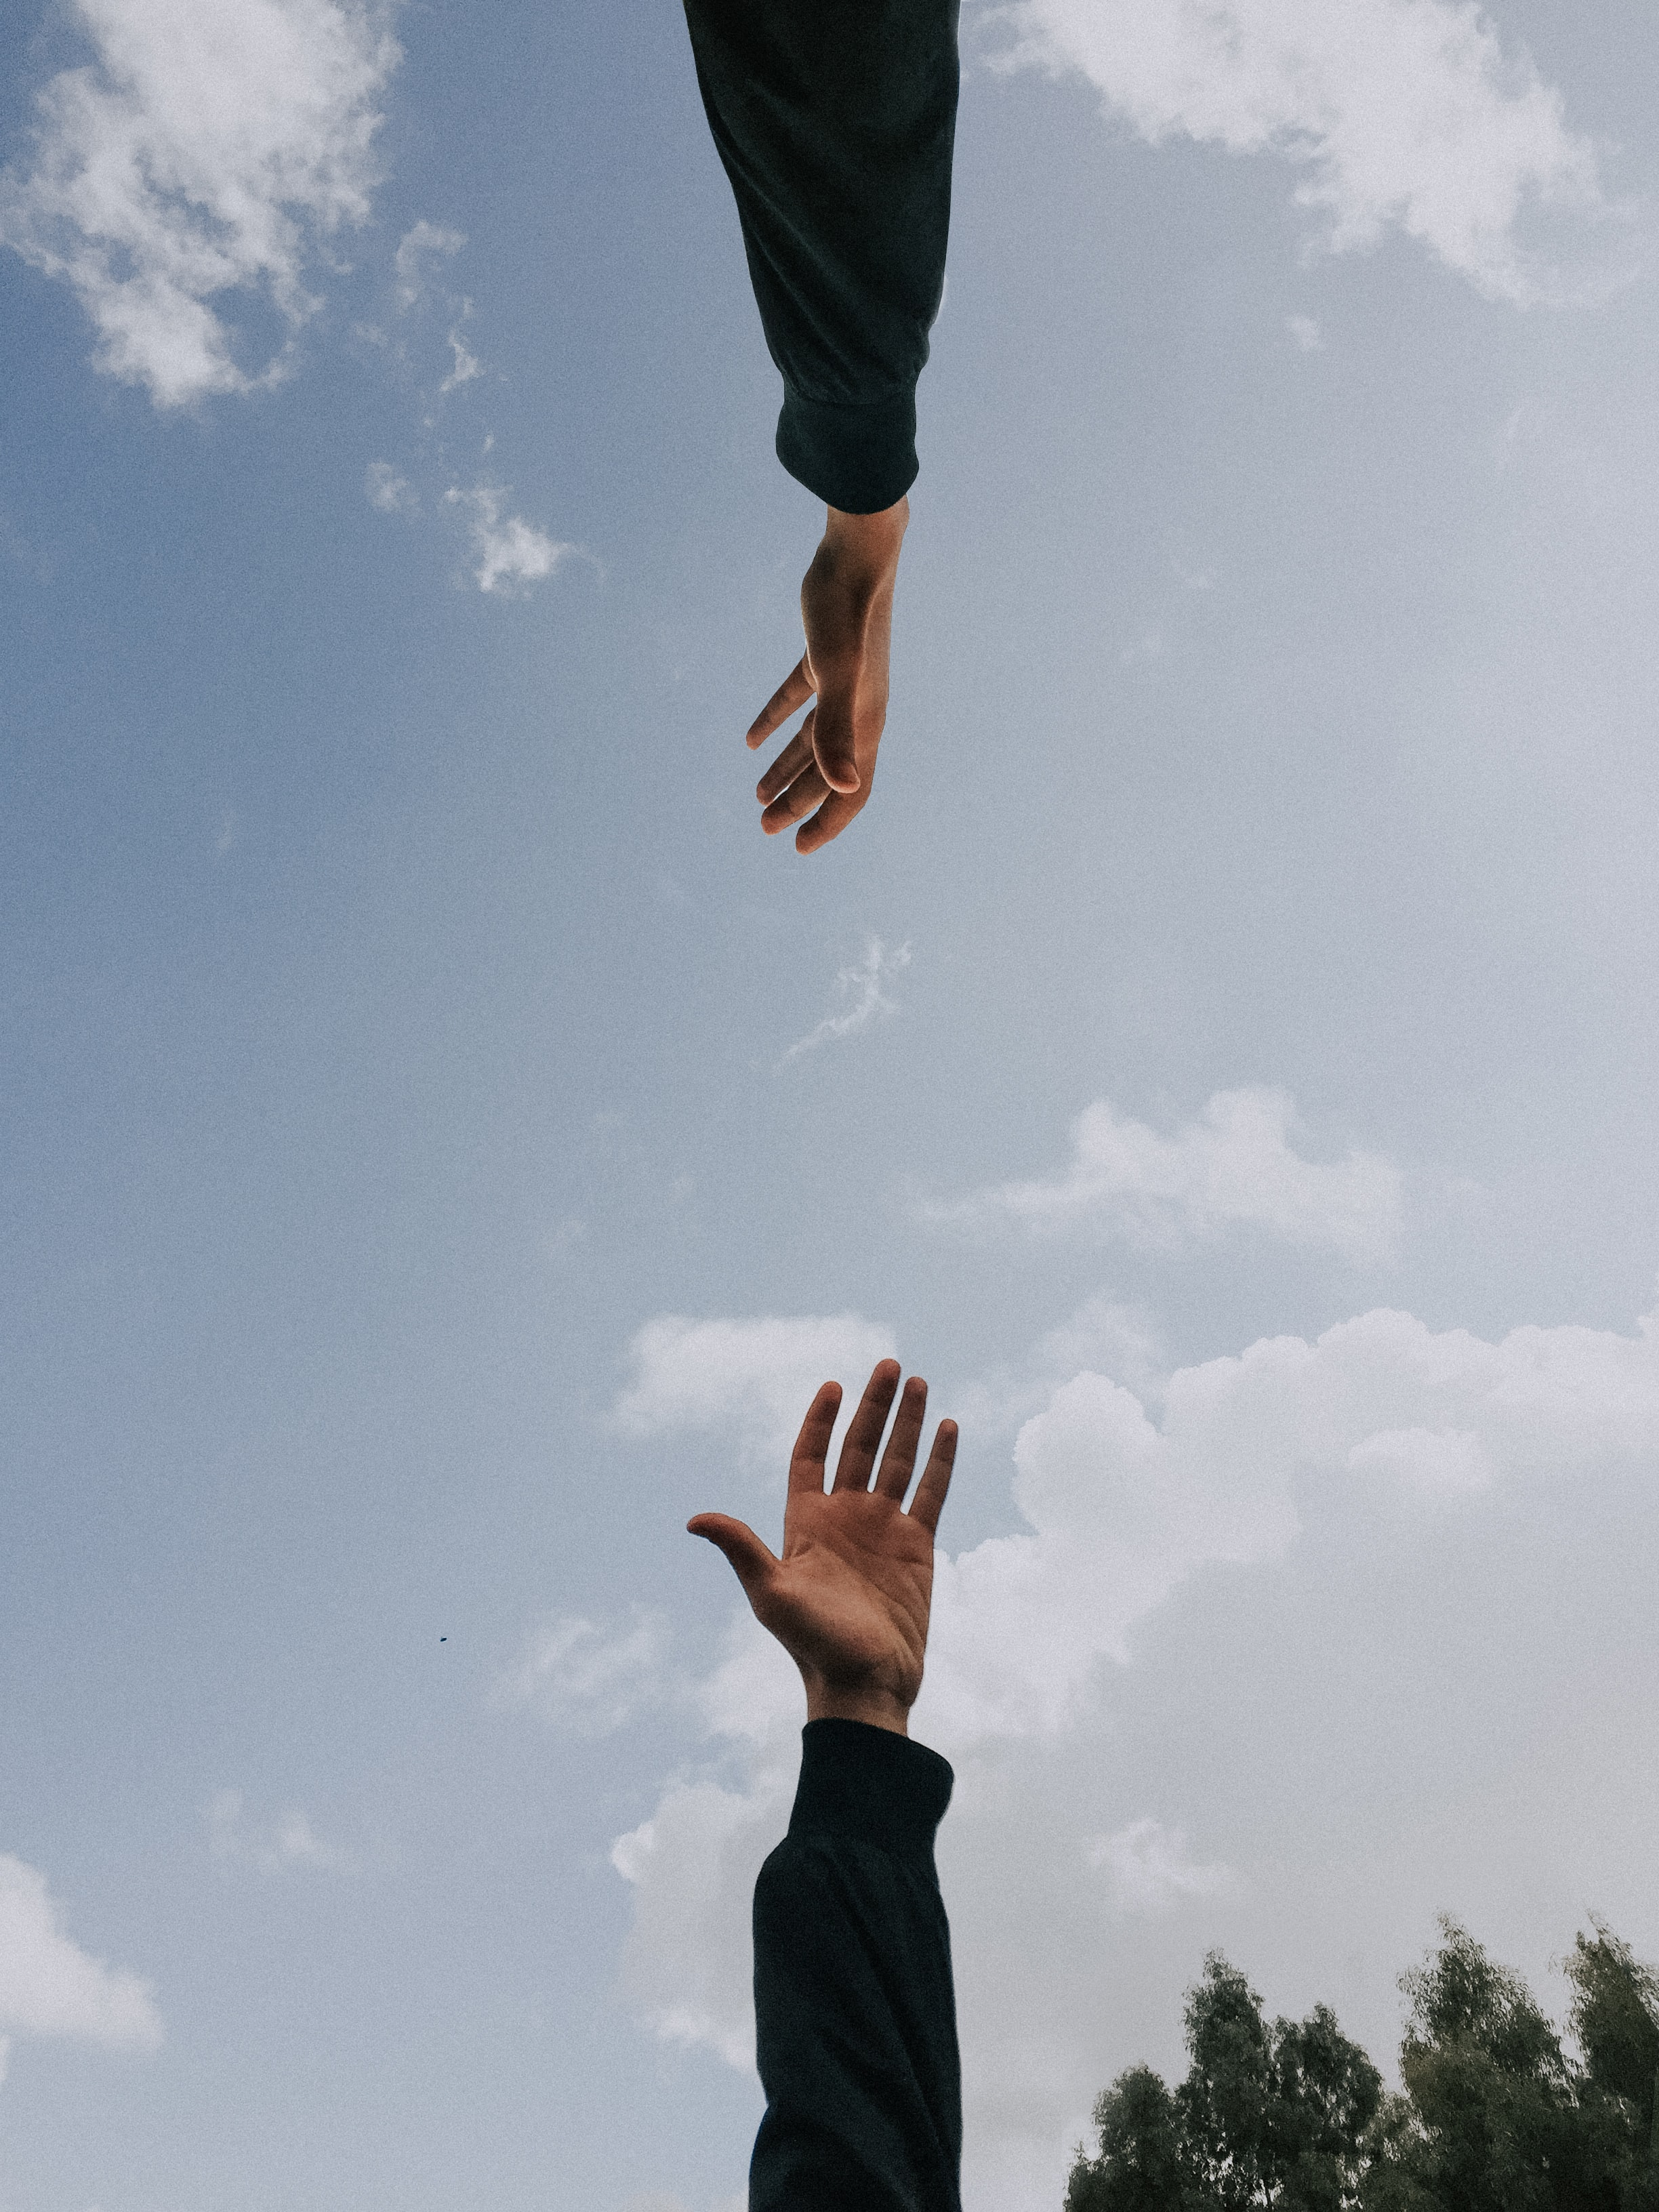 Hands reaching out - building connection